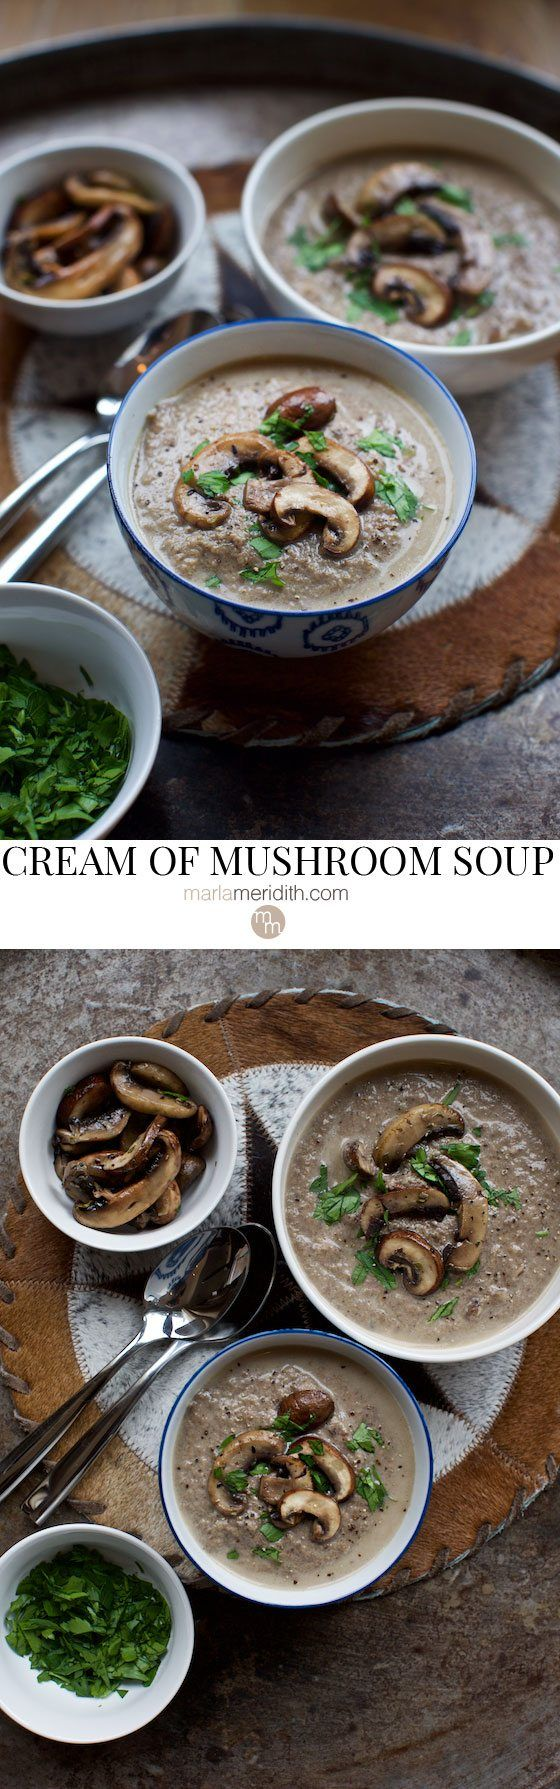 When the weather cools down, this CREAM OF MUSHROOM SOUP will warm you up! #recipe on MarlaMeridith.com ( @Marla Meridith )